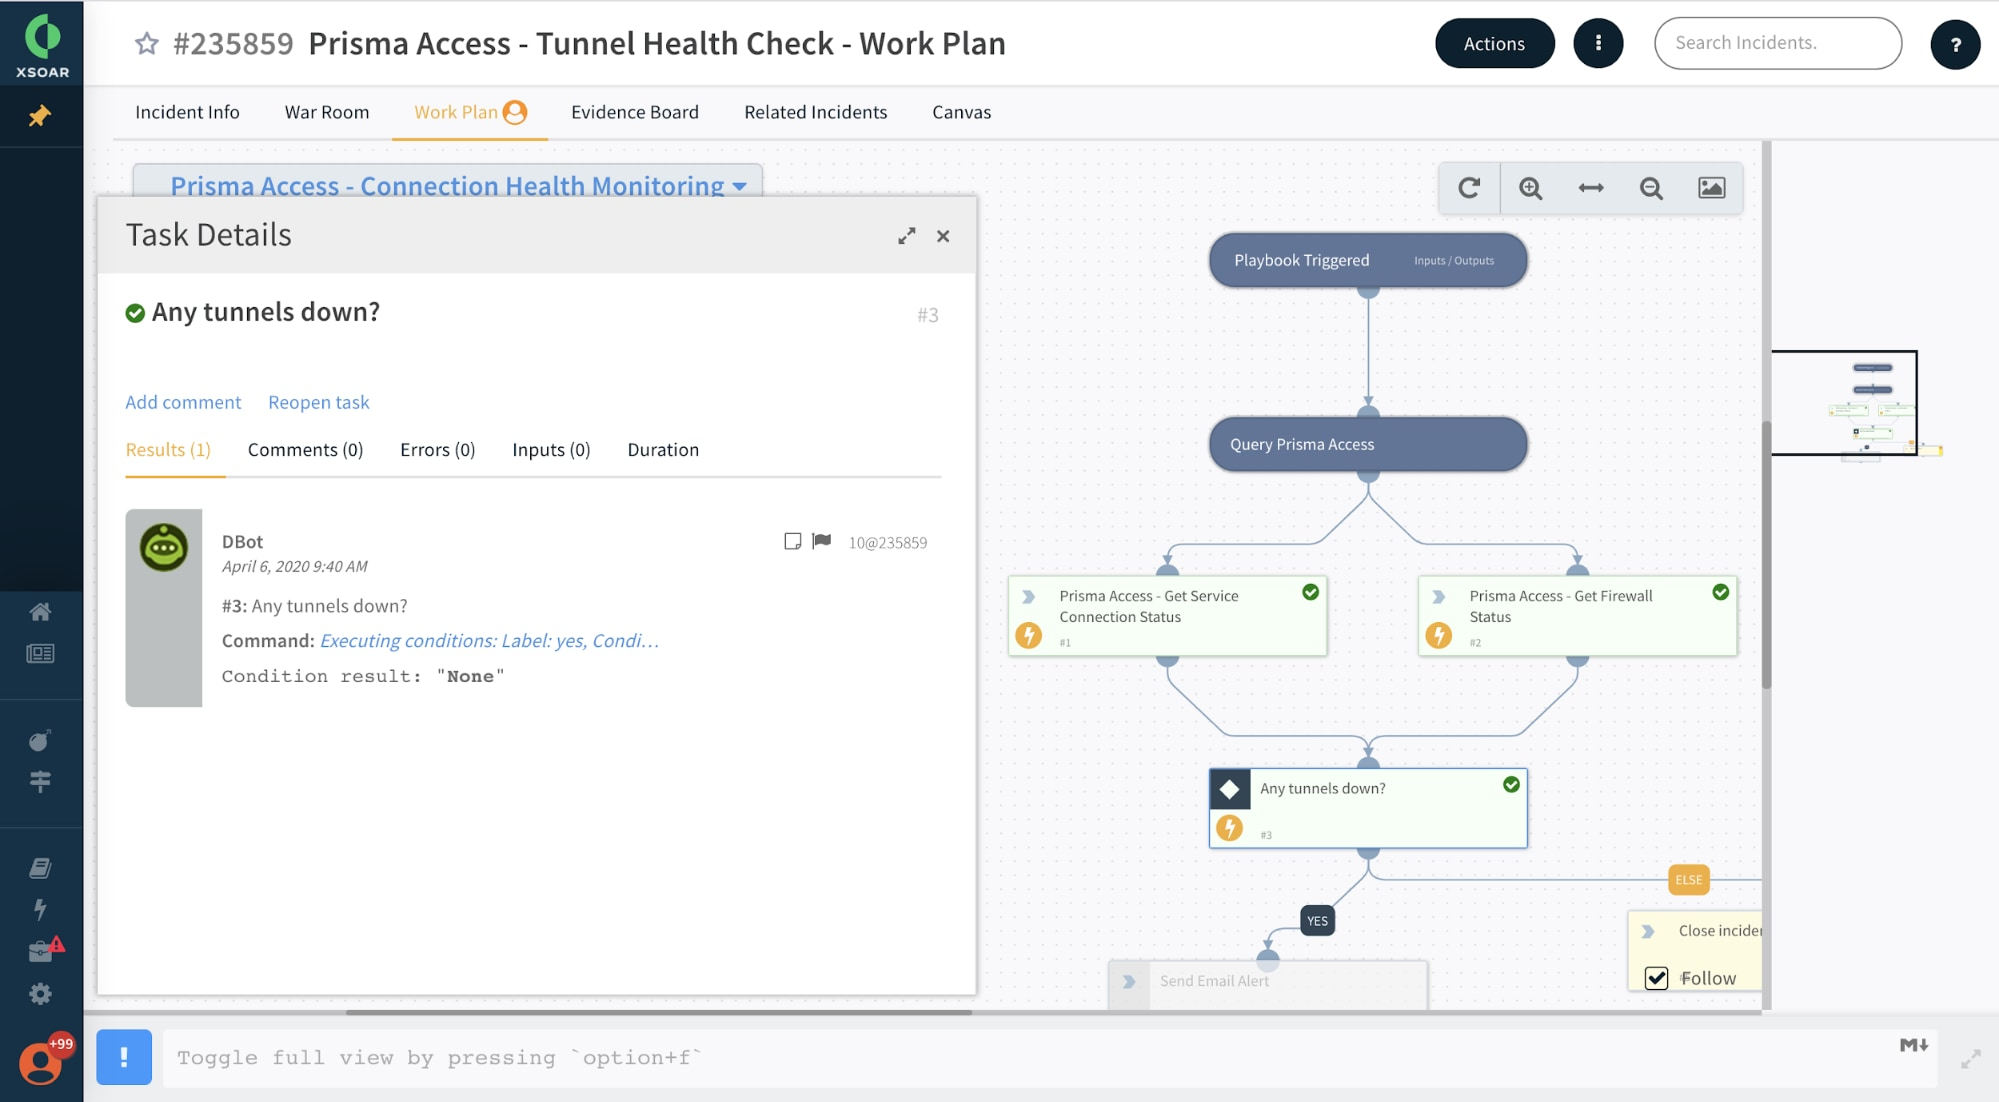 Prisma Access - Tunnel Health Check - Work Plan